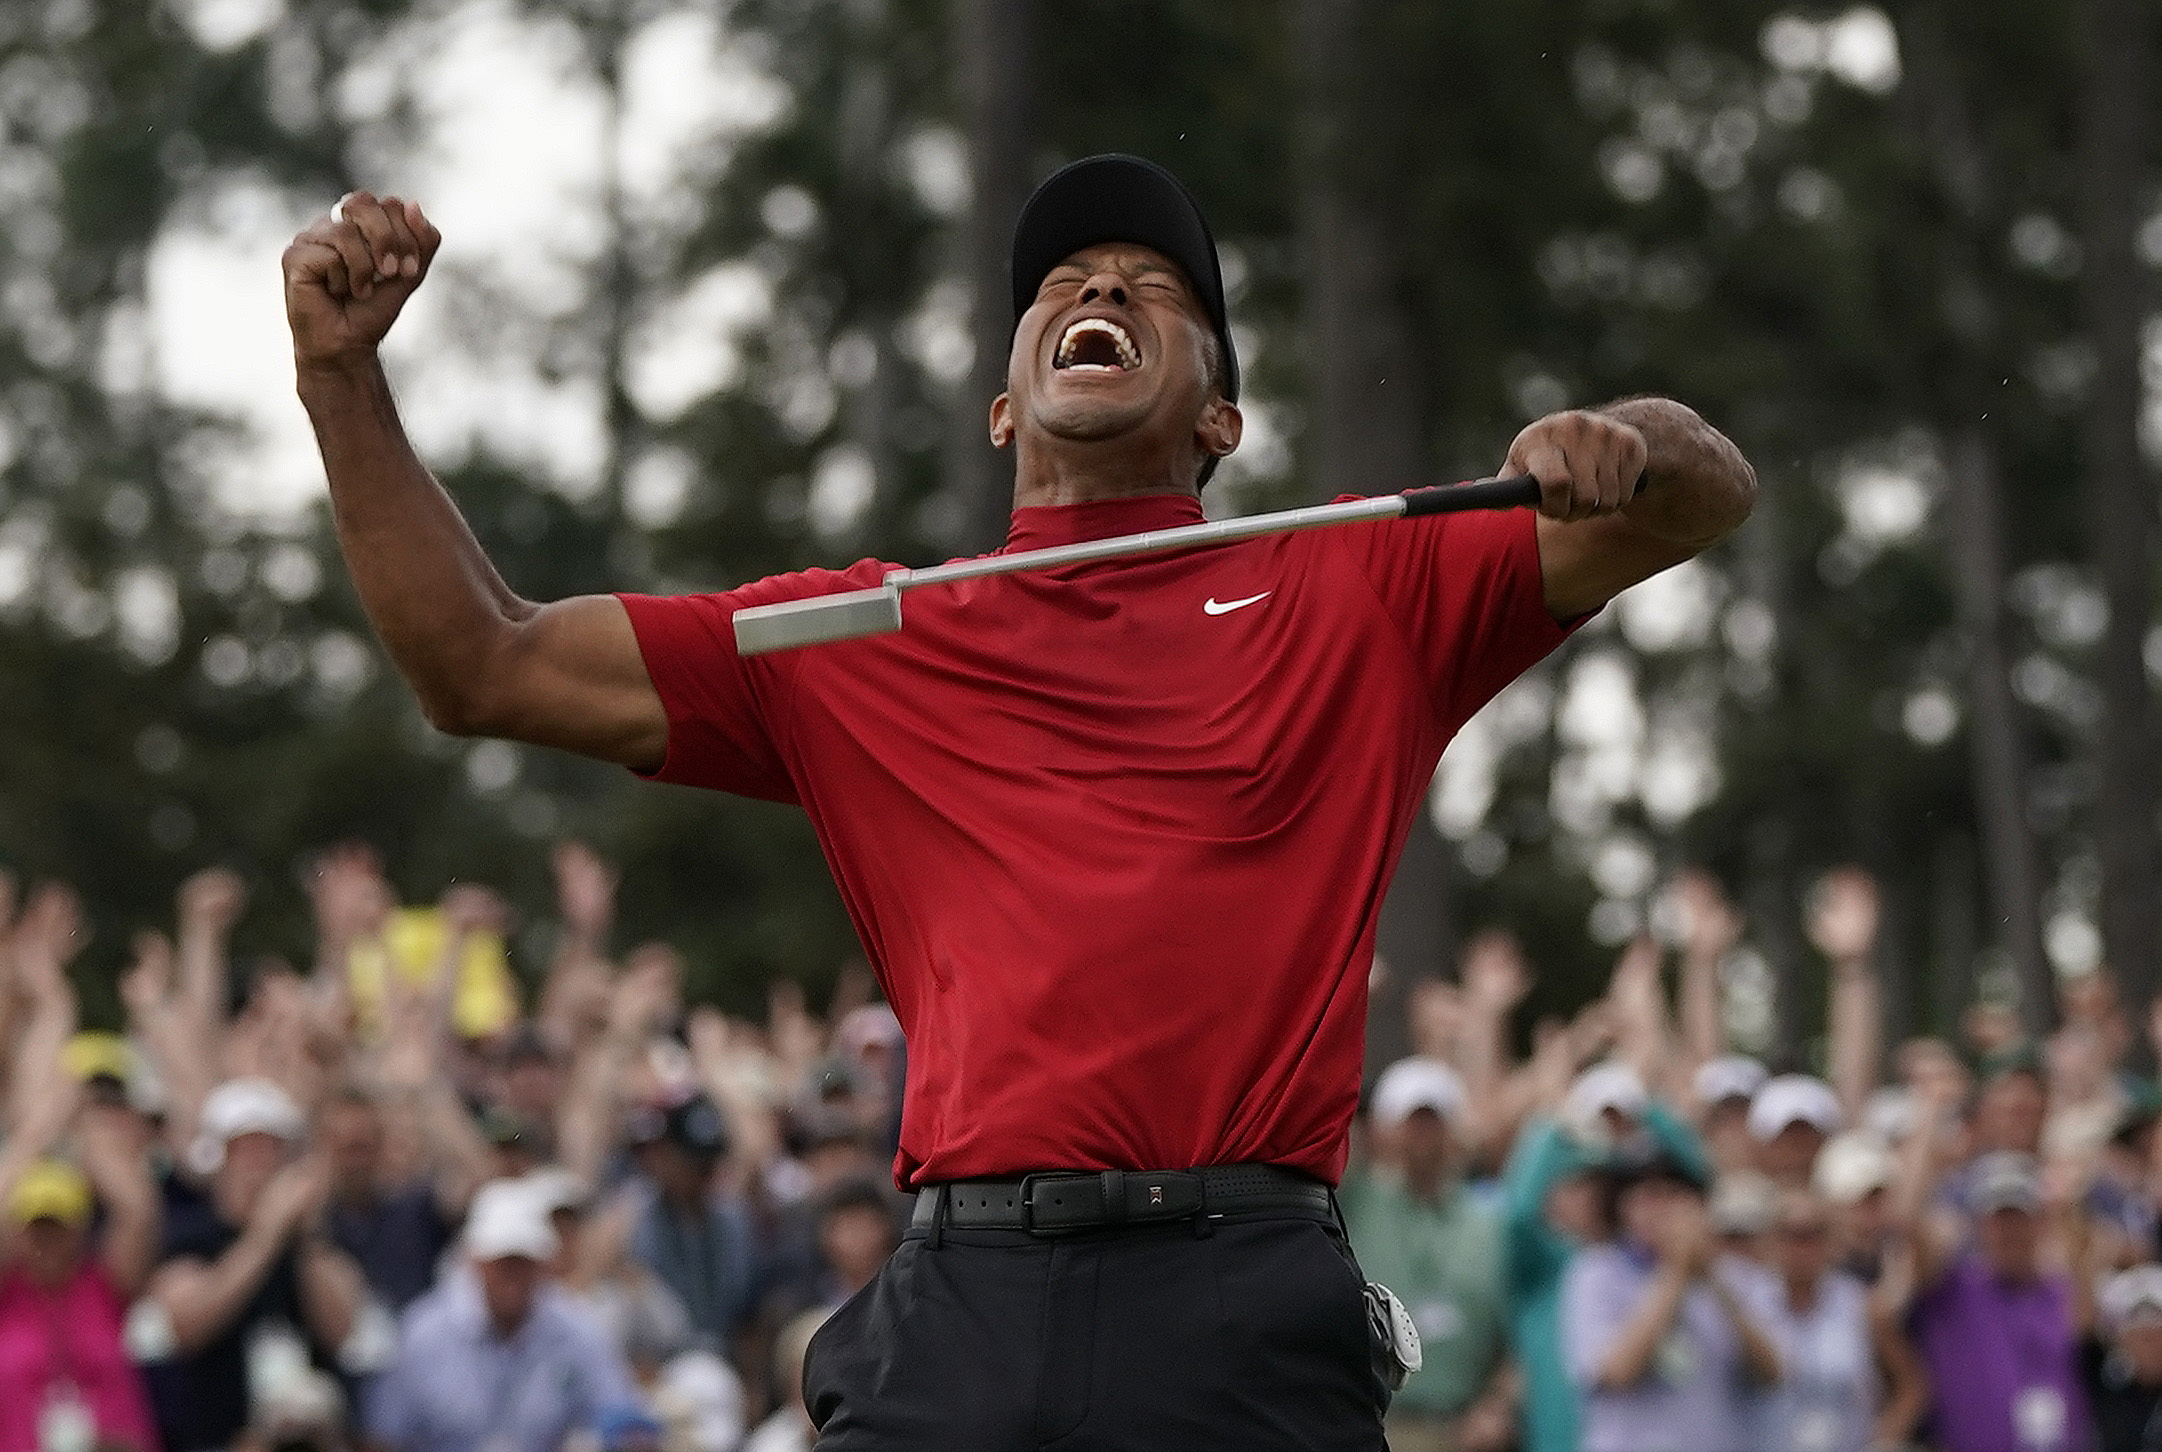 'Return to glory:' Is Tiger Woods' win greatest comeback story in sports?